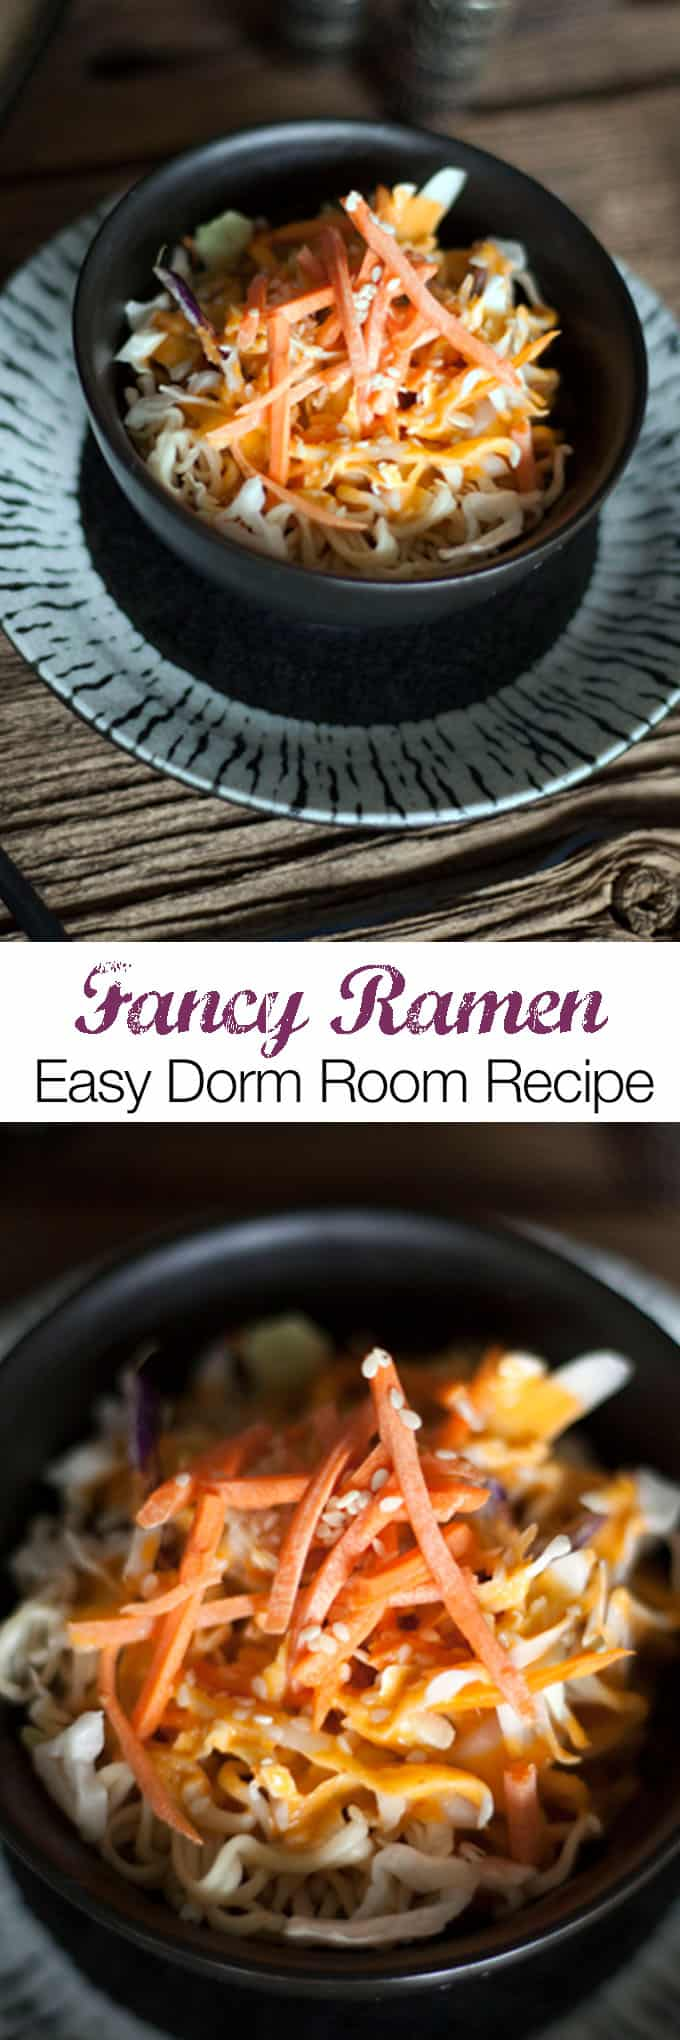 vegan ramen recipe a dorm room hack  the edgy veg